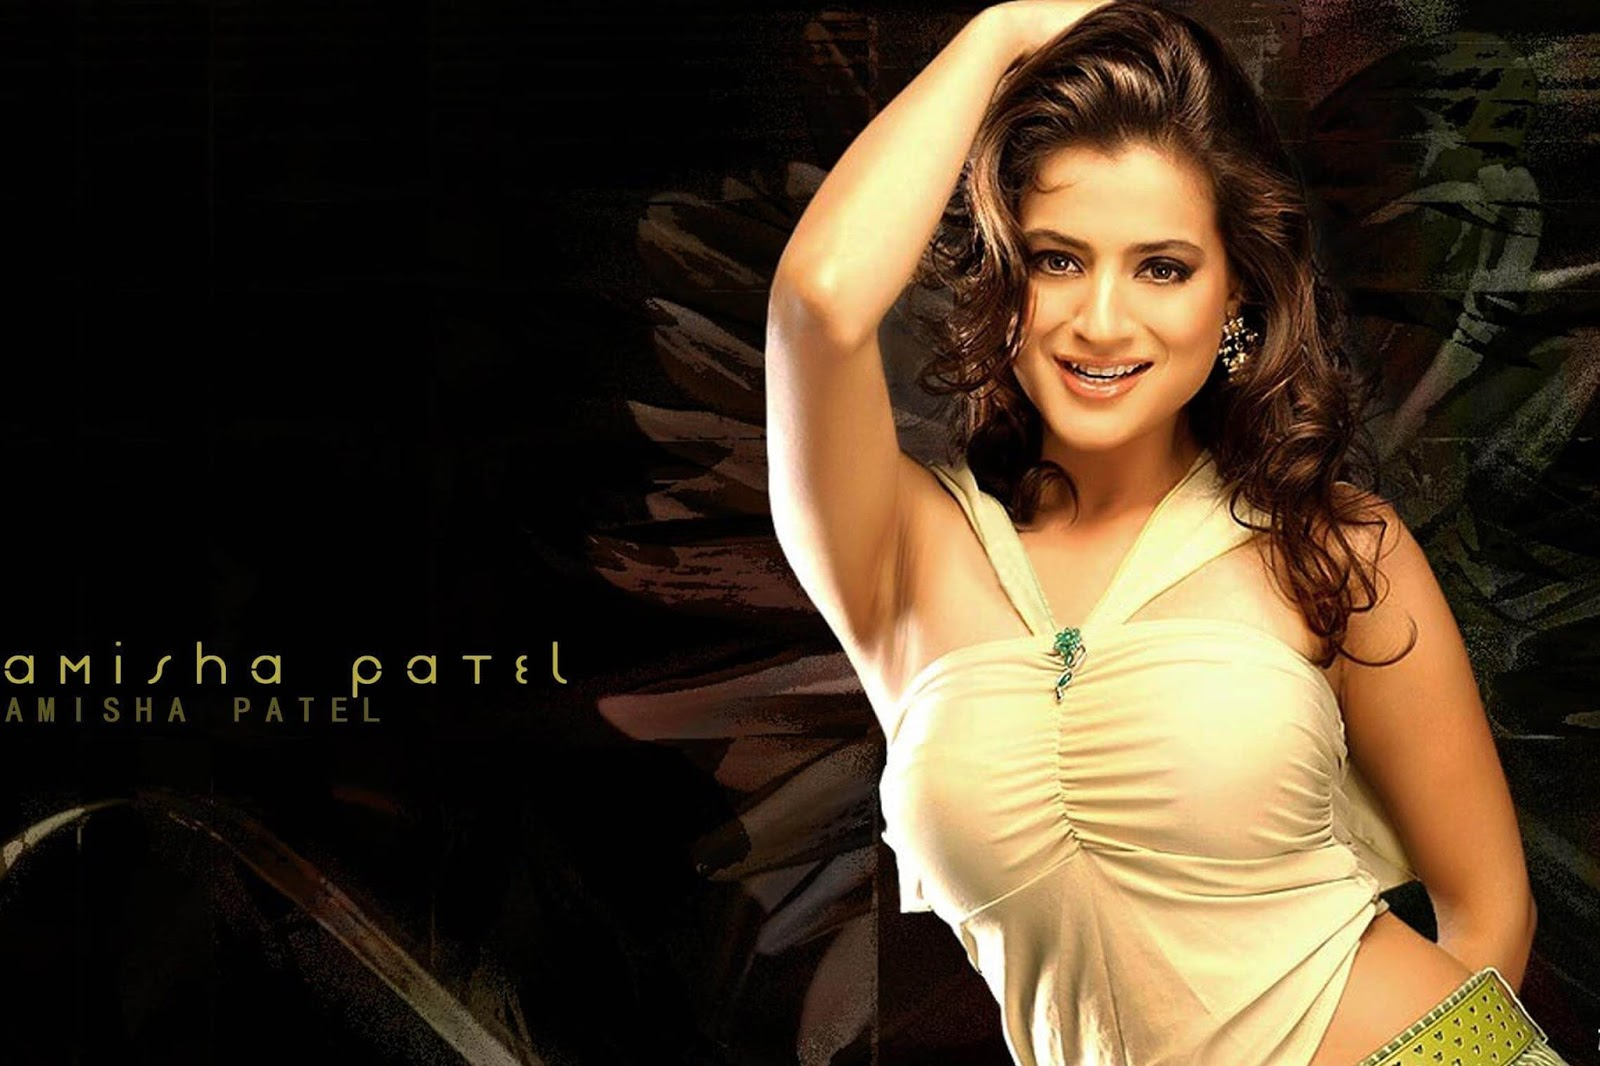 Letest Top 10 Amisha Patel Hd Wallpapers And Backgrounds